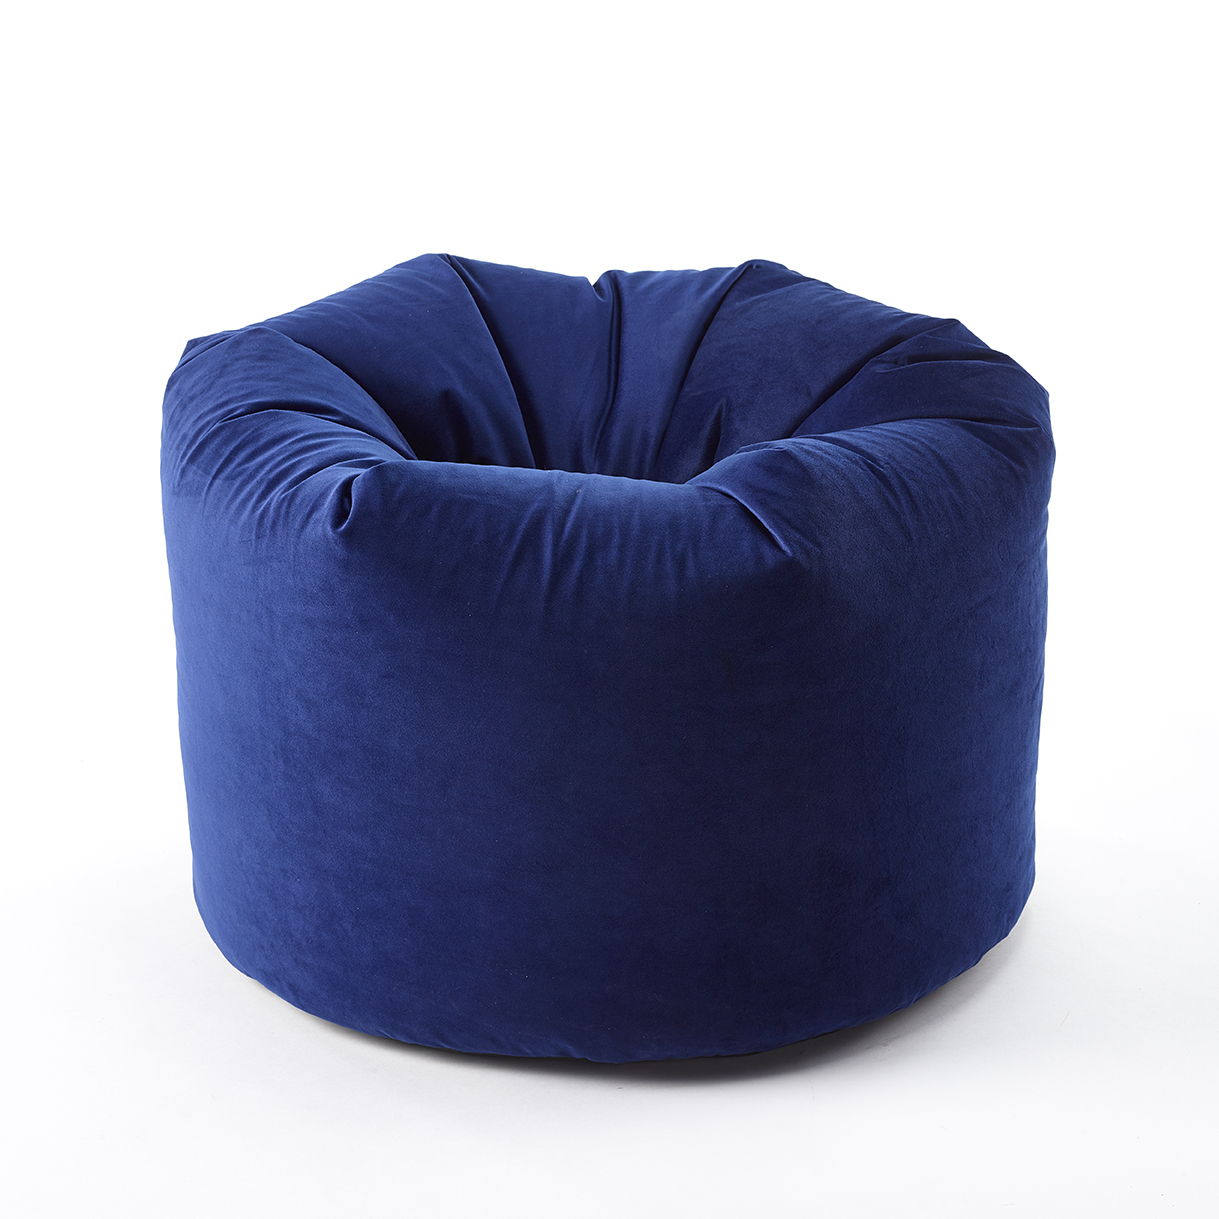 The Home Furnishings Company Royal Blue Velvet Style Luxury Bean Bag 50 x 60cms